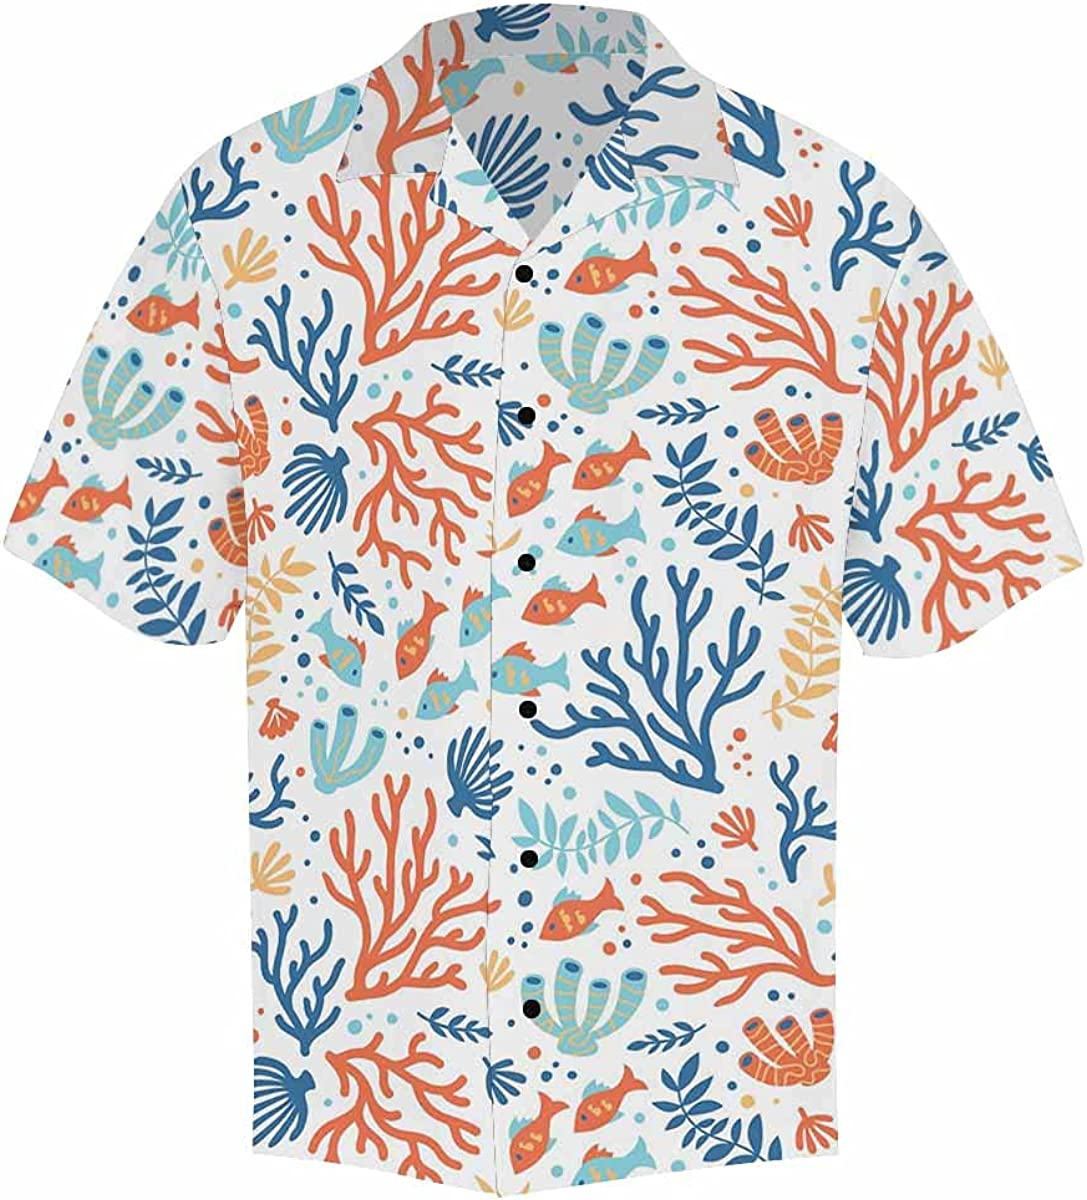 InterestPrint Men's Casual Button Down Short Hawa Sleeve Special specialty shop price Windows